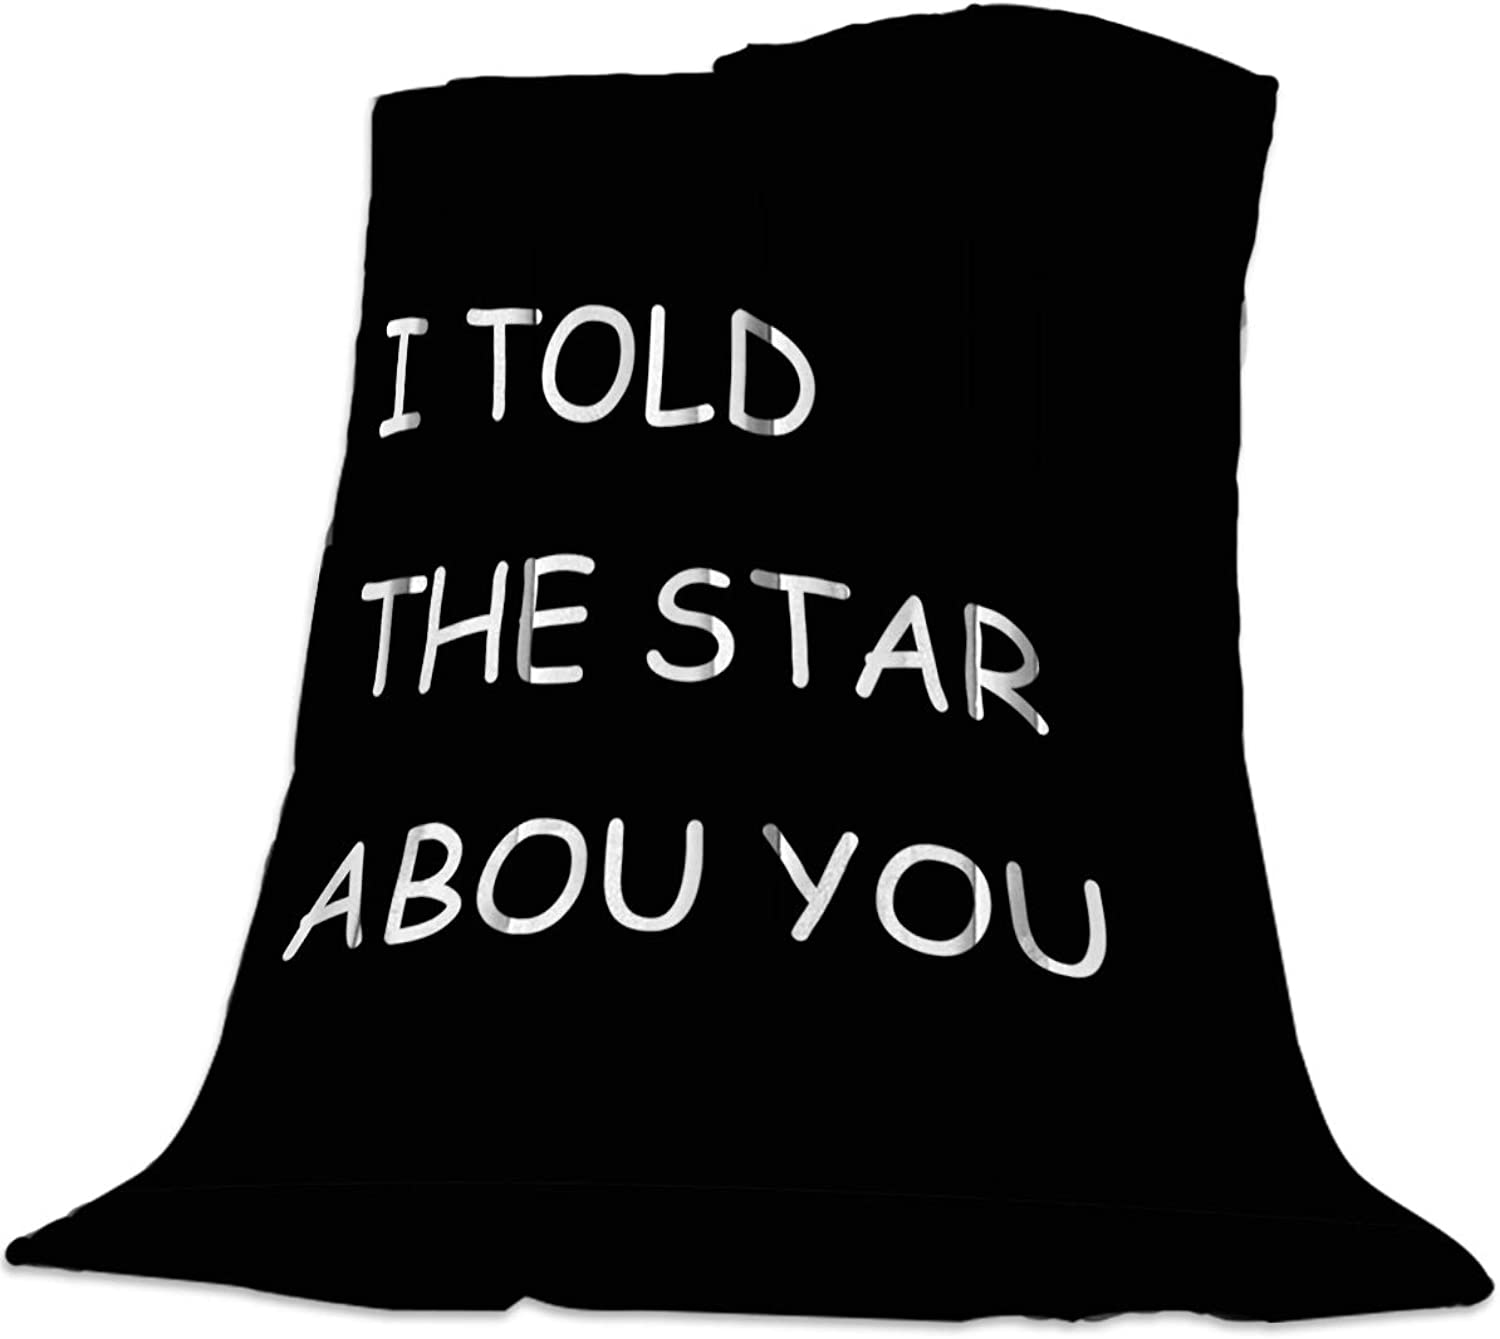 YEHO Art Gallery 39x49 Inch Flannel Fleece Bed Blanket Soft Throw-Blankets for Girls Boys,I Told The Star About You Black Pattern,Cozy Lightweight Blankets for Bedroom Living Room Sofa Couch